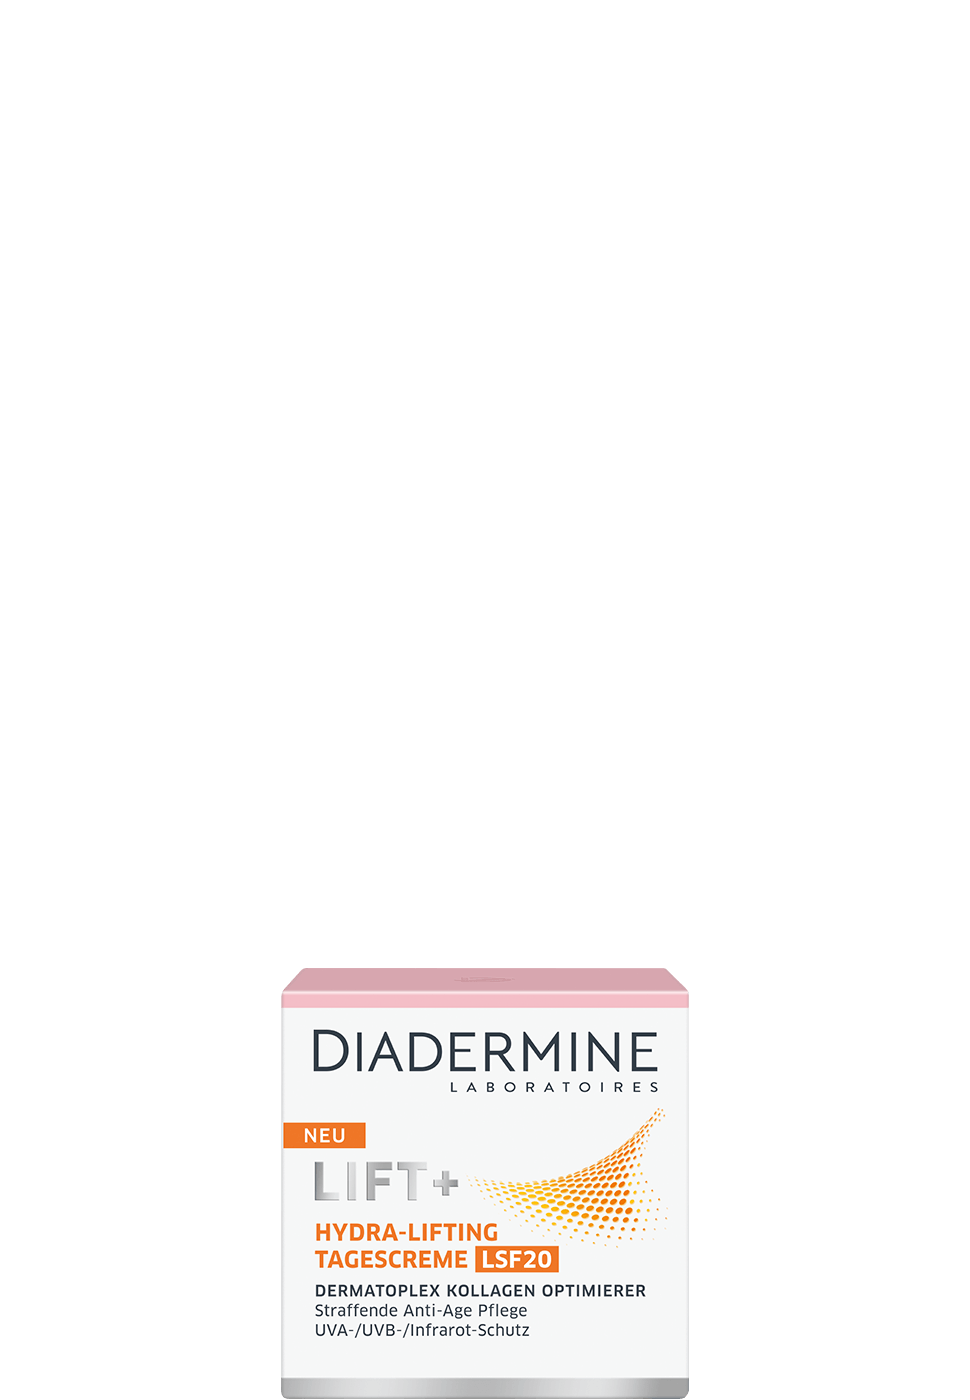 diadermine_at_lift_plus_hydra_lifting_tagescreme_lsf20_970x1400